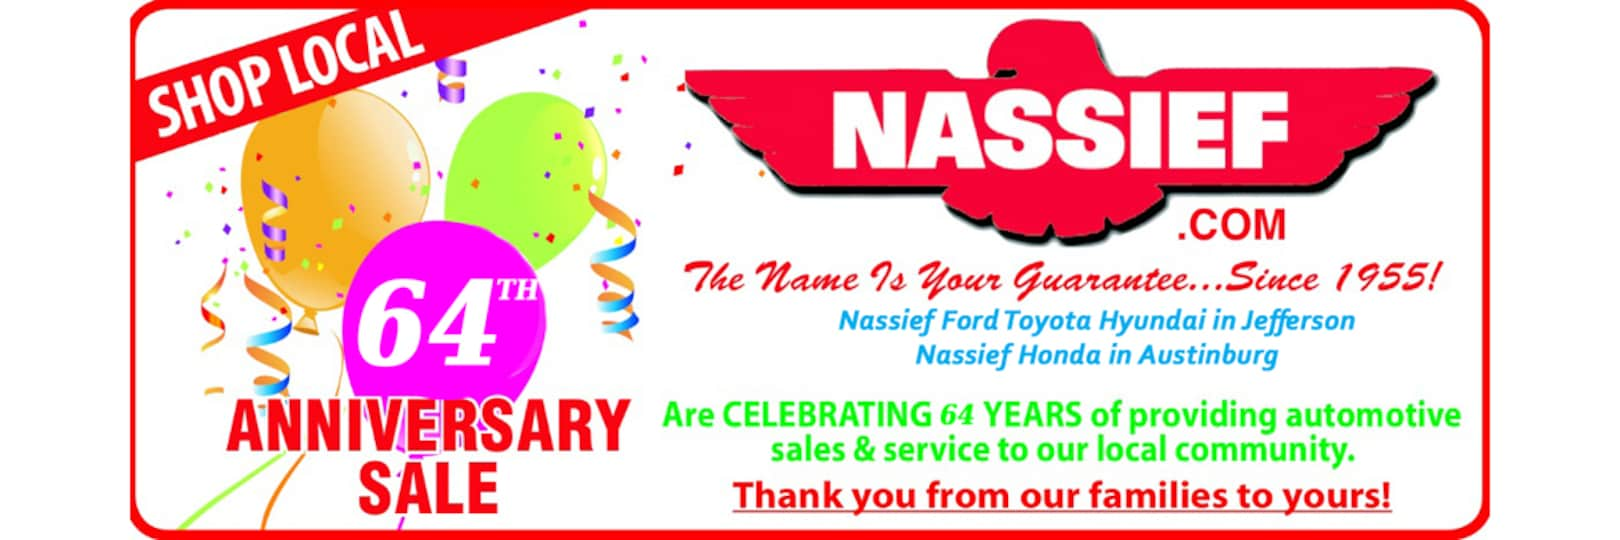 Nassief Auto Group Ford Inc  | Ford Dealership in Jefferson OH